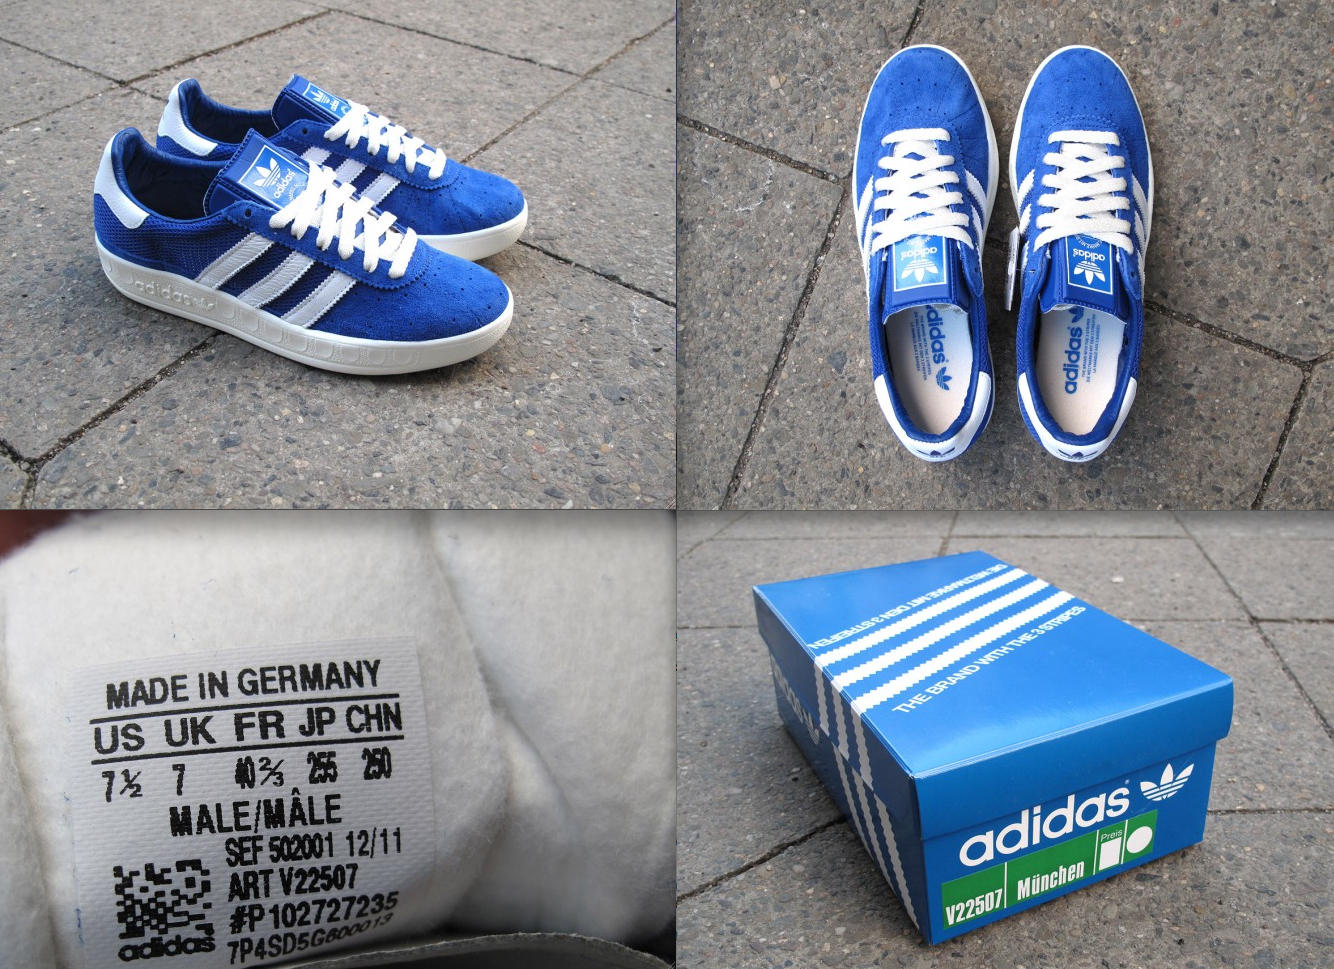 Adidas Adidas In Made Shoes Adidas Shoes Made Made Shoes GermanyAdidou In In GermanyAdidou ZwiTOPkXu